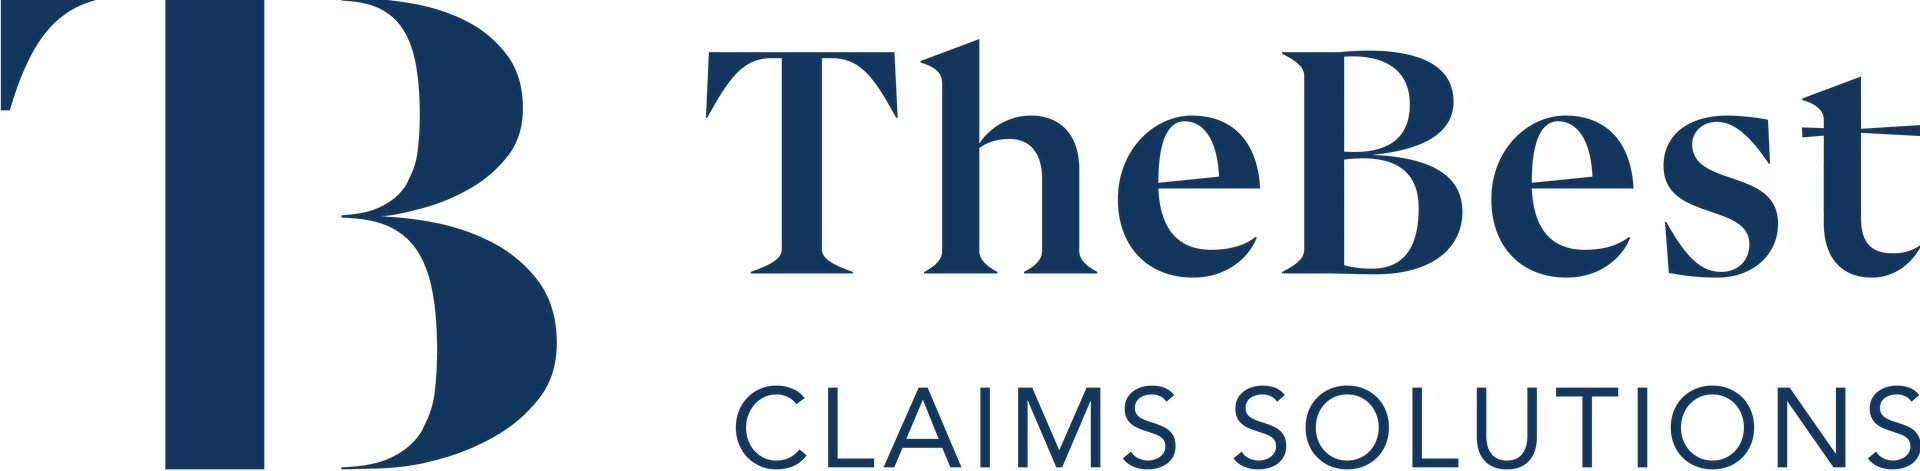 TheBest Claims Solutions logo